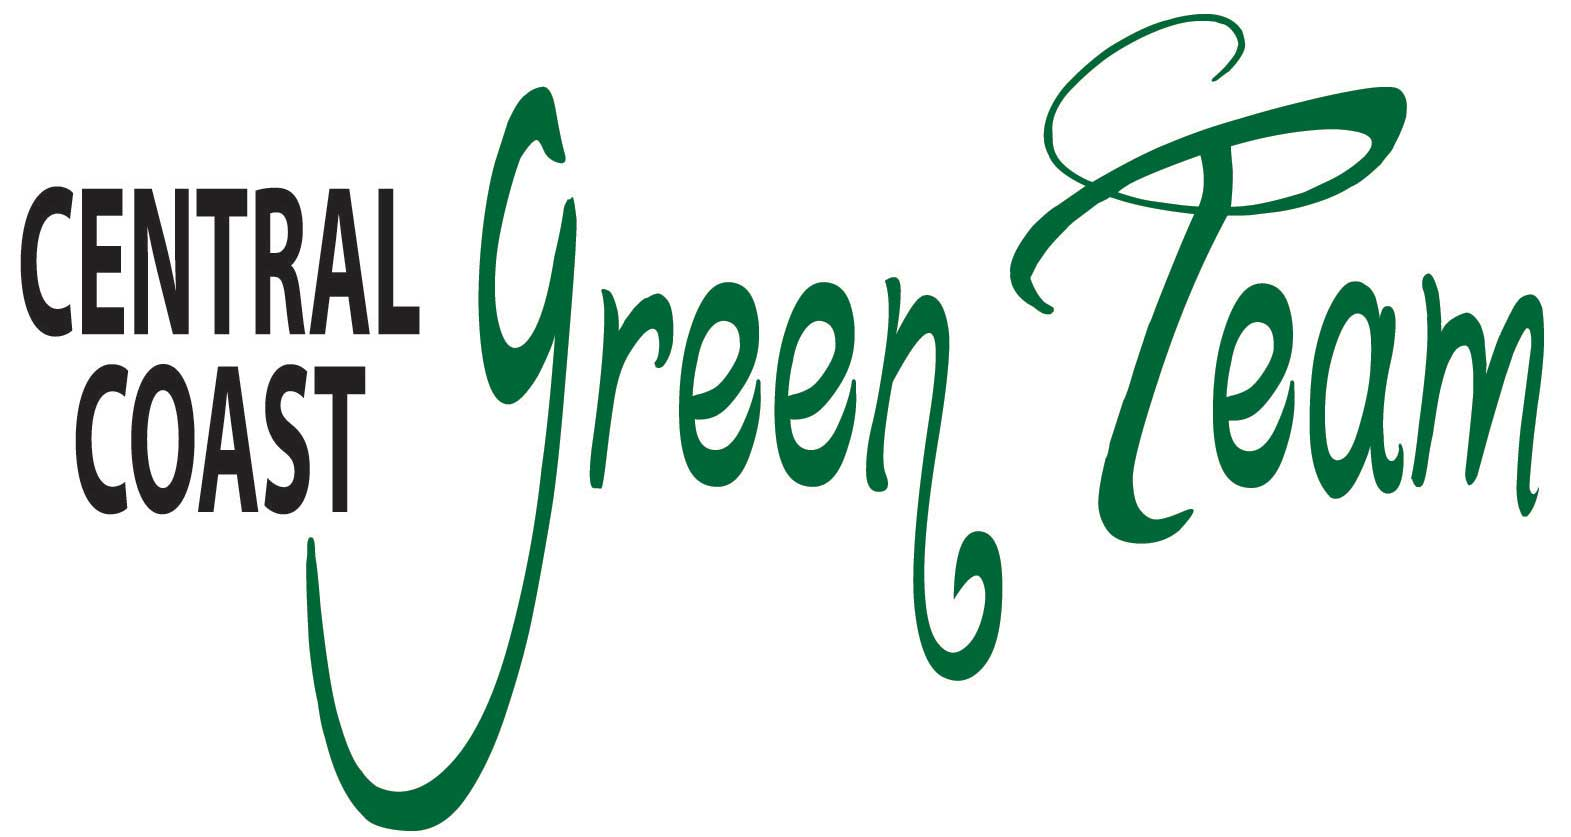 CCGreenTeamLogo-black-_-green.jpg